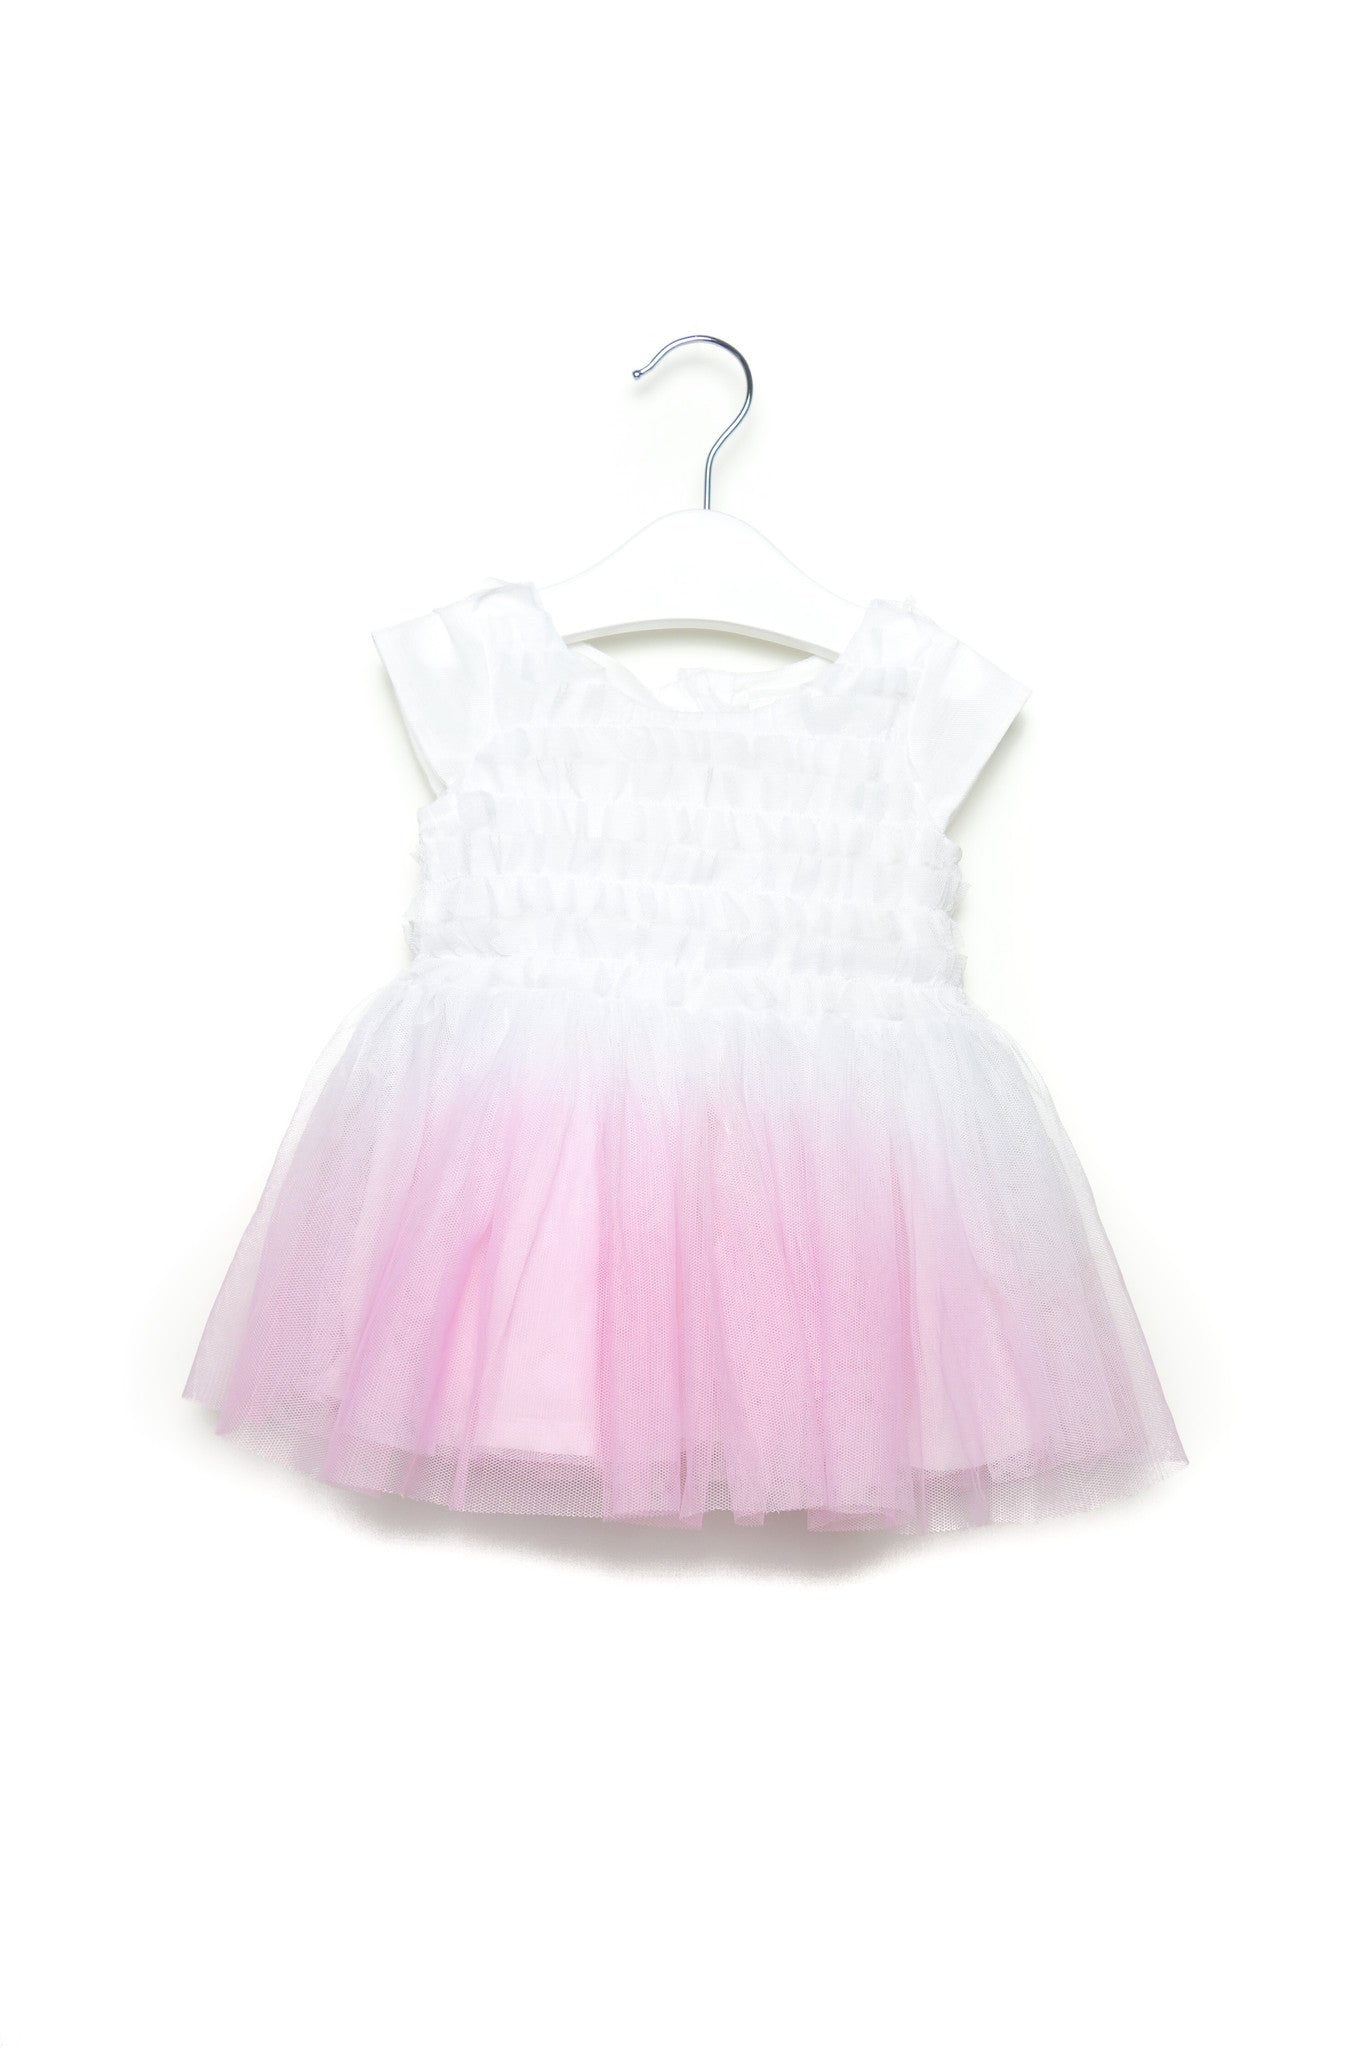 10001504~Dress 0-3M, Seed at Retykle - Online Baby & Kids Clothing Up to 90% Off